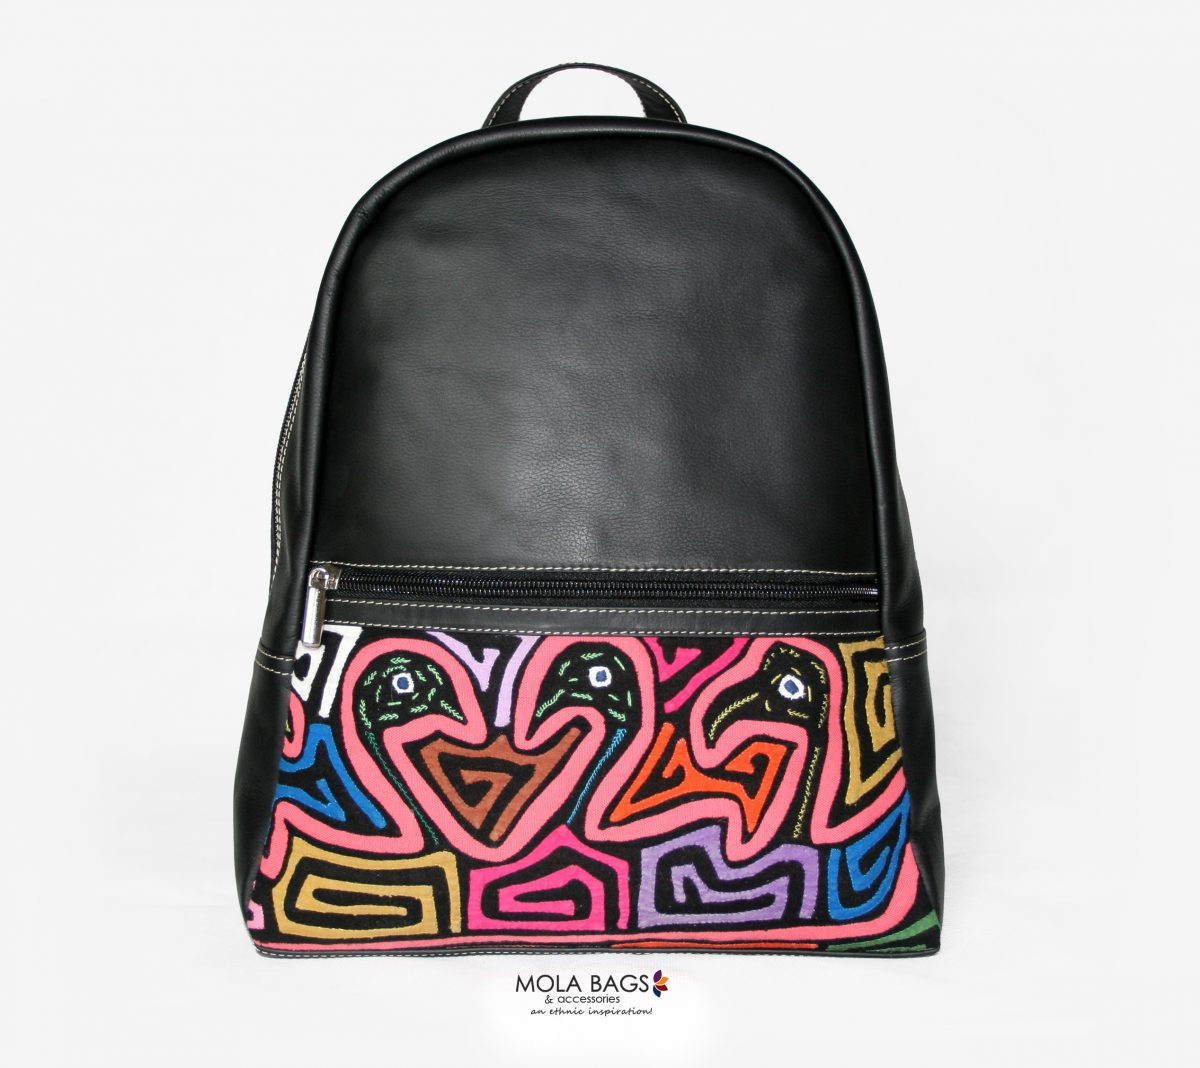 77b6eaa9a25d Small Leather City Backpack - Unique piece handmade in Colombia!